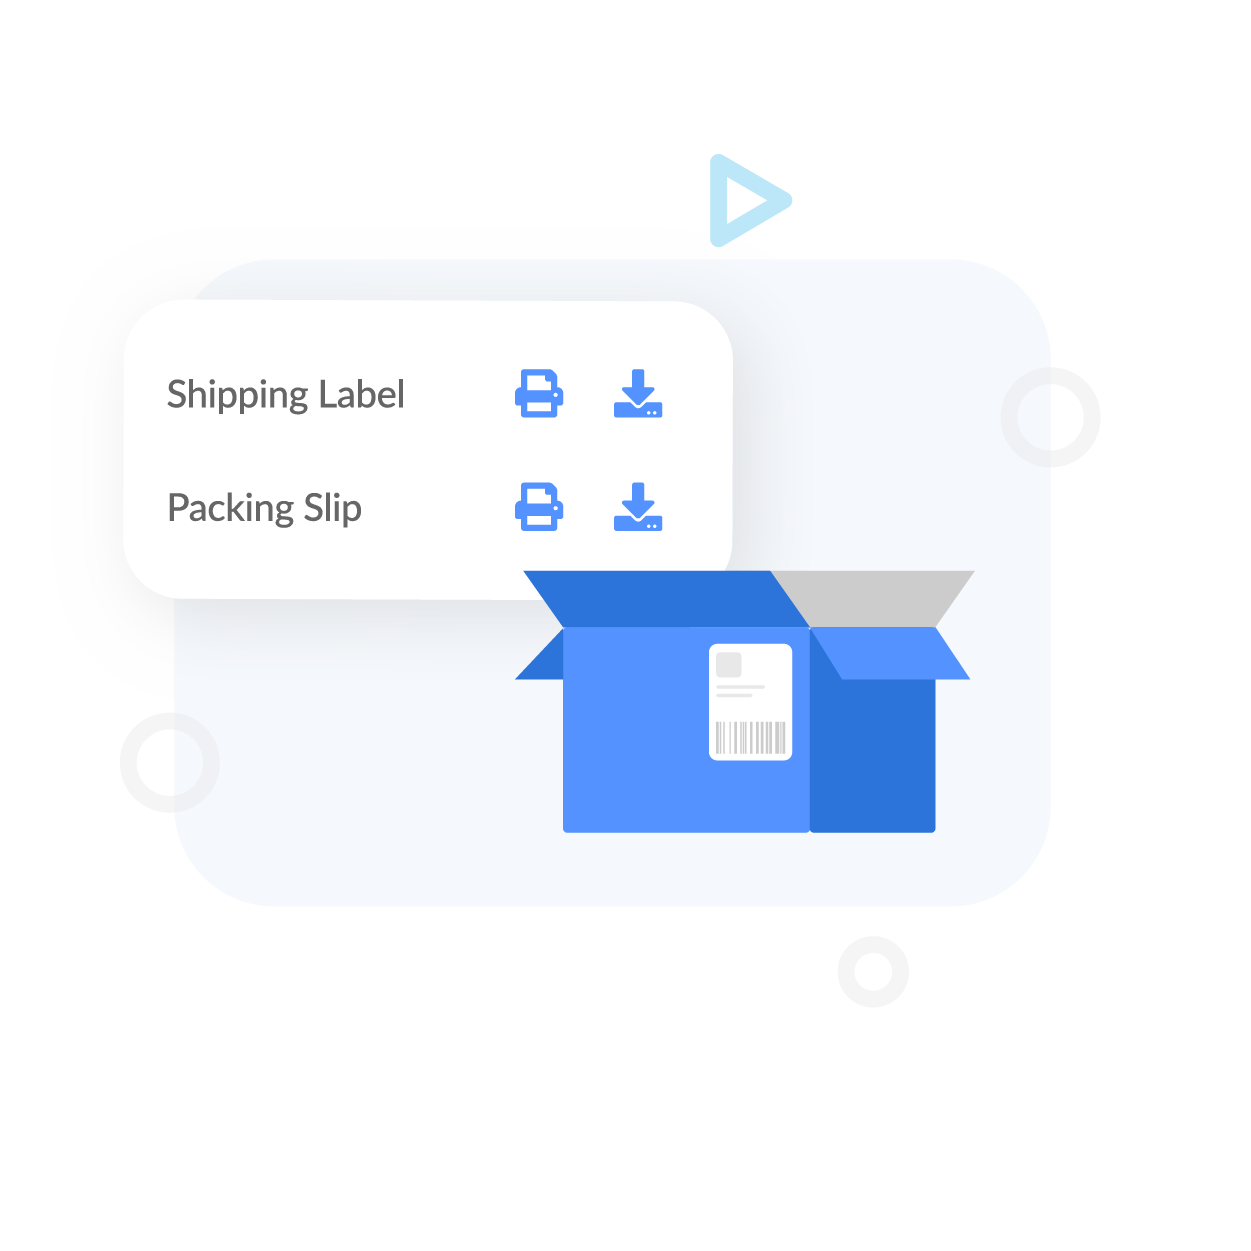 Printing Labels screen above a shipping box